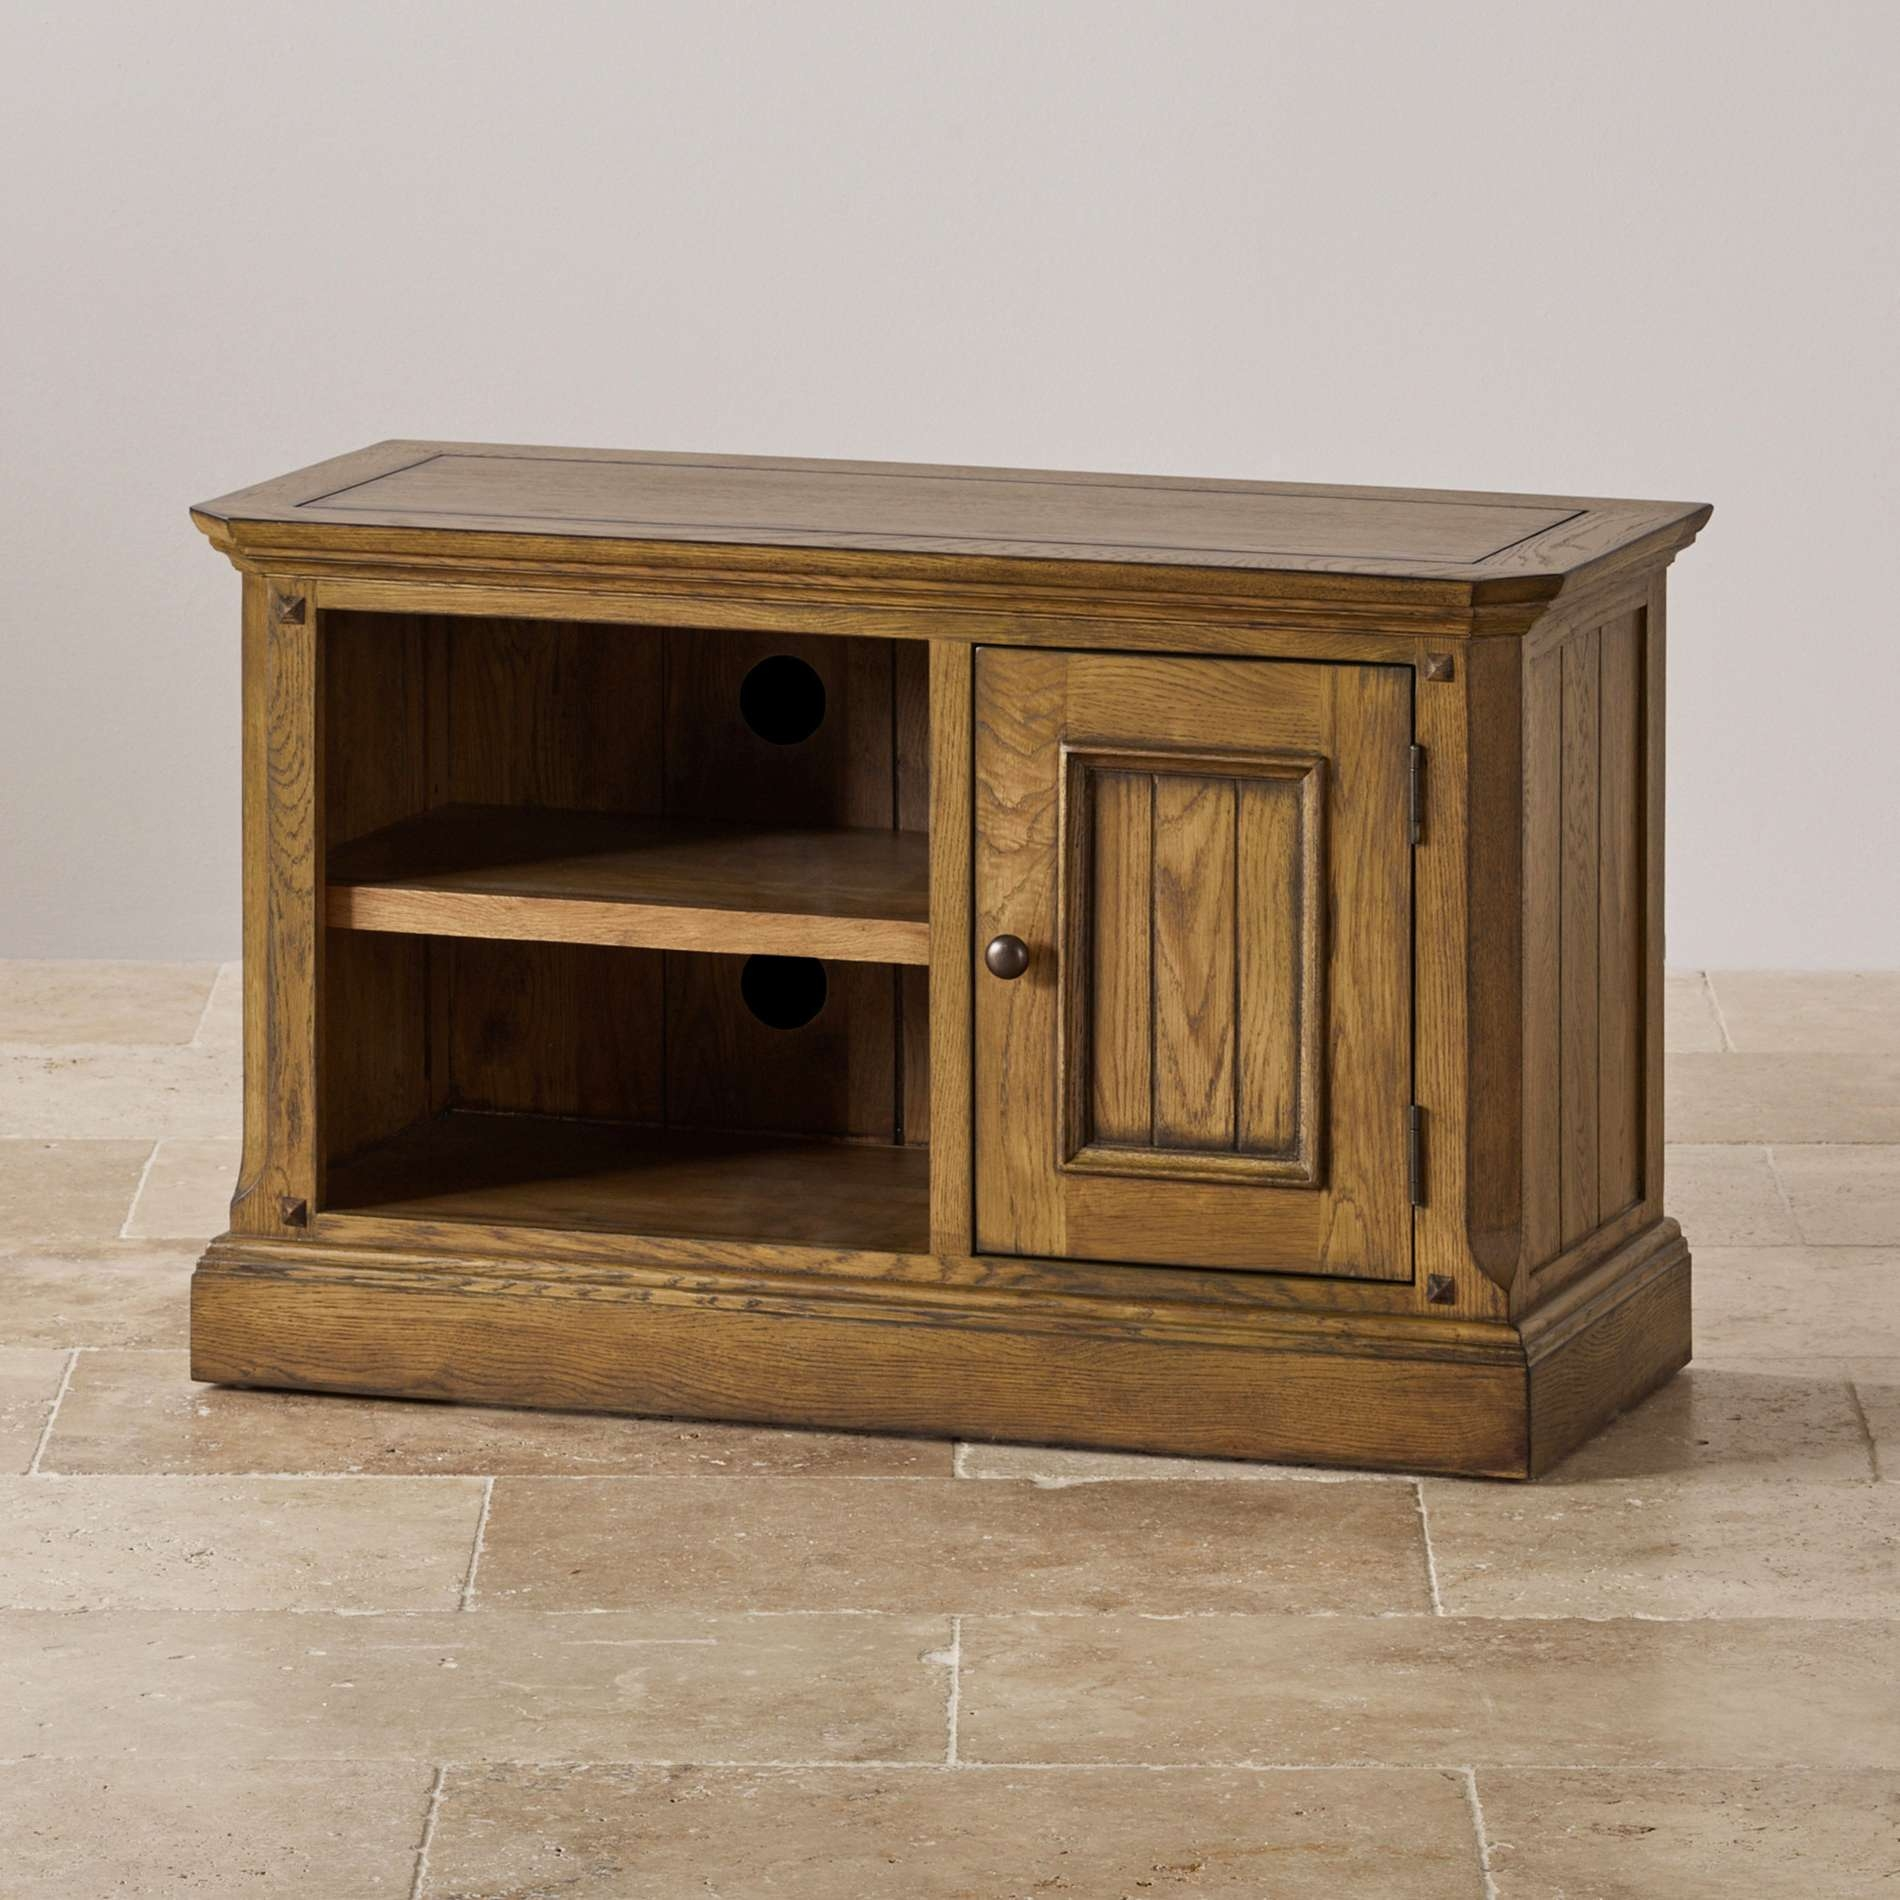 Manor House Small Tv Unit In Solid Oak | Oak Furniture Land For Small Oak Tv Cabinets (View 7 of 20)